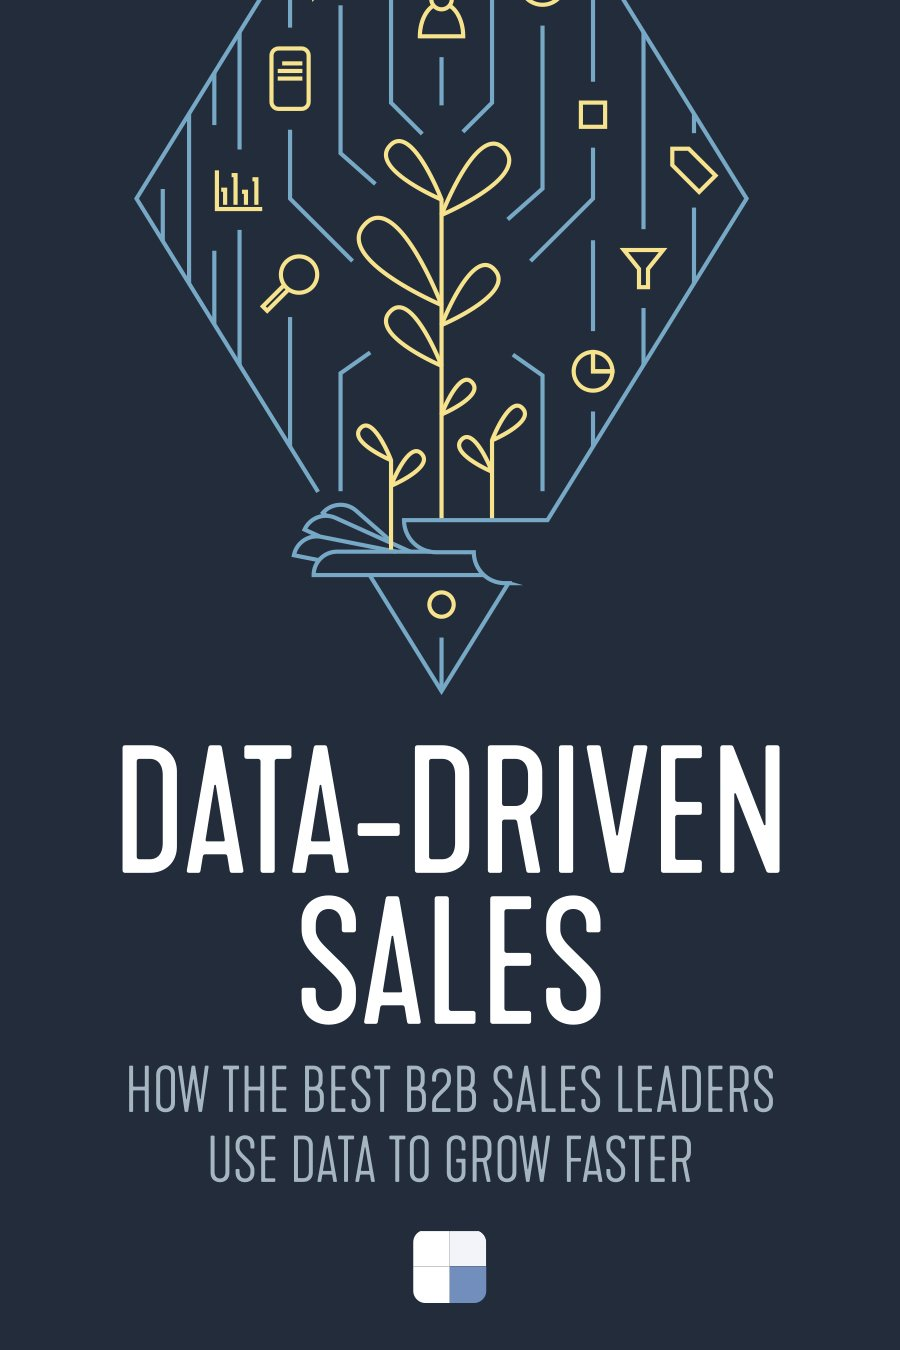 Data-Driven Sales: Learn how sales leaders at HubSpot, Salesloft, and other top B2B companies use data to grow faster